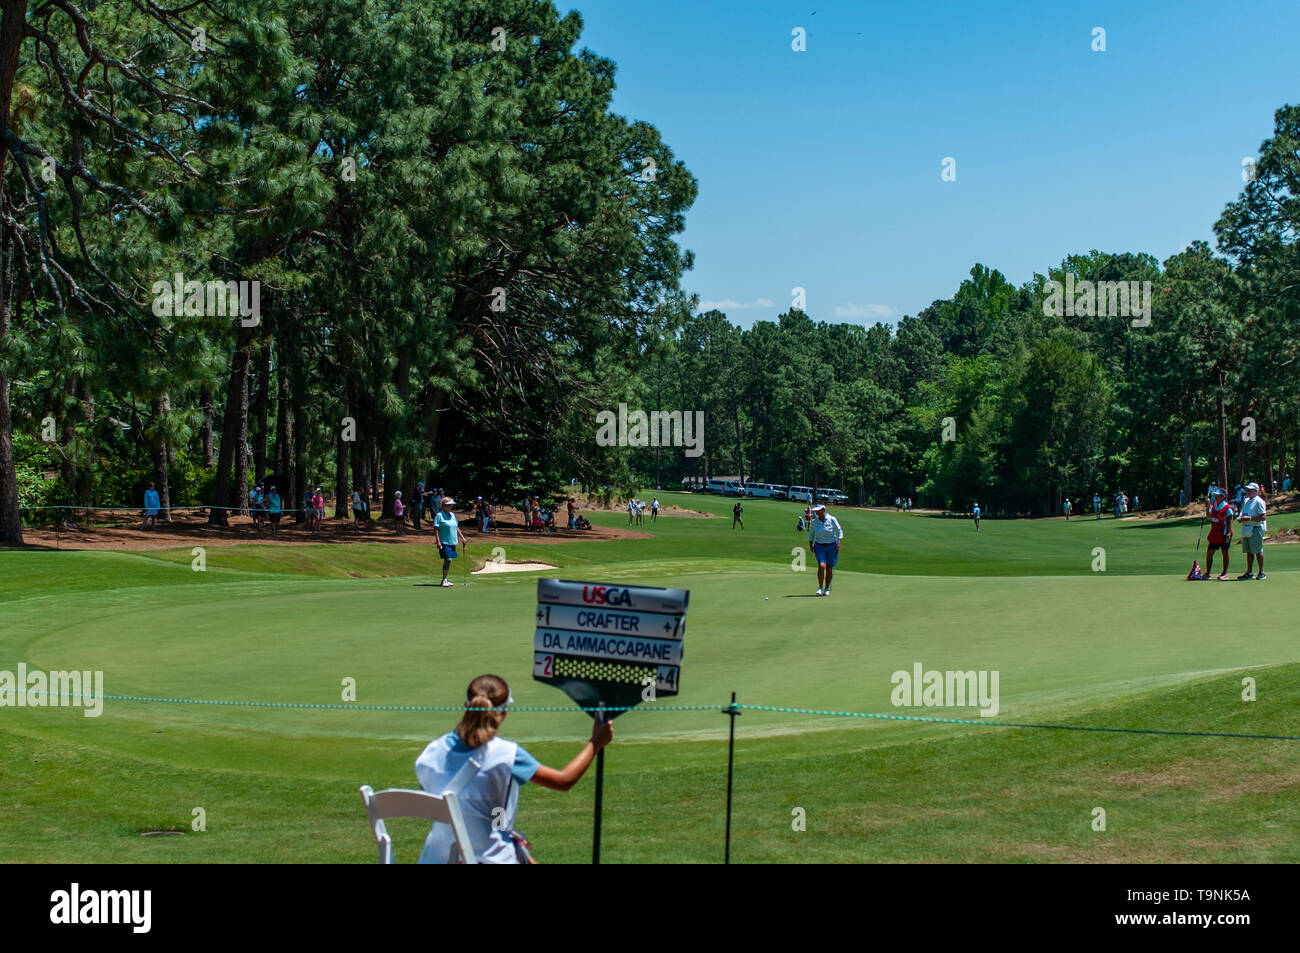 Southern Pines, North Carolina, USA. 19th May, 2019. May 19, 2019 - Southern Pines, North Carolina, US - Final round action of the USGA's 2nd U.S. Senior Women's Open Championship at Pine Needles Lodge & Golf Club, May 19, 2019 in Southern Pines, North Carolina. HELEN ALFREDSSON of Sweden won with a final round of 72, carding a 285 total for the tournament. Credit: Timothy L. Hale/ZUMA Wire/Alamy Live News - Stock Image